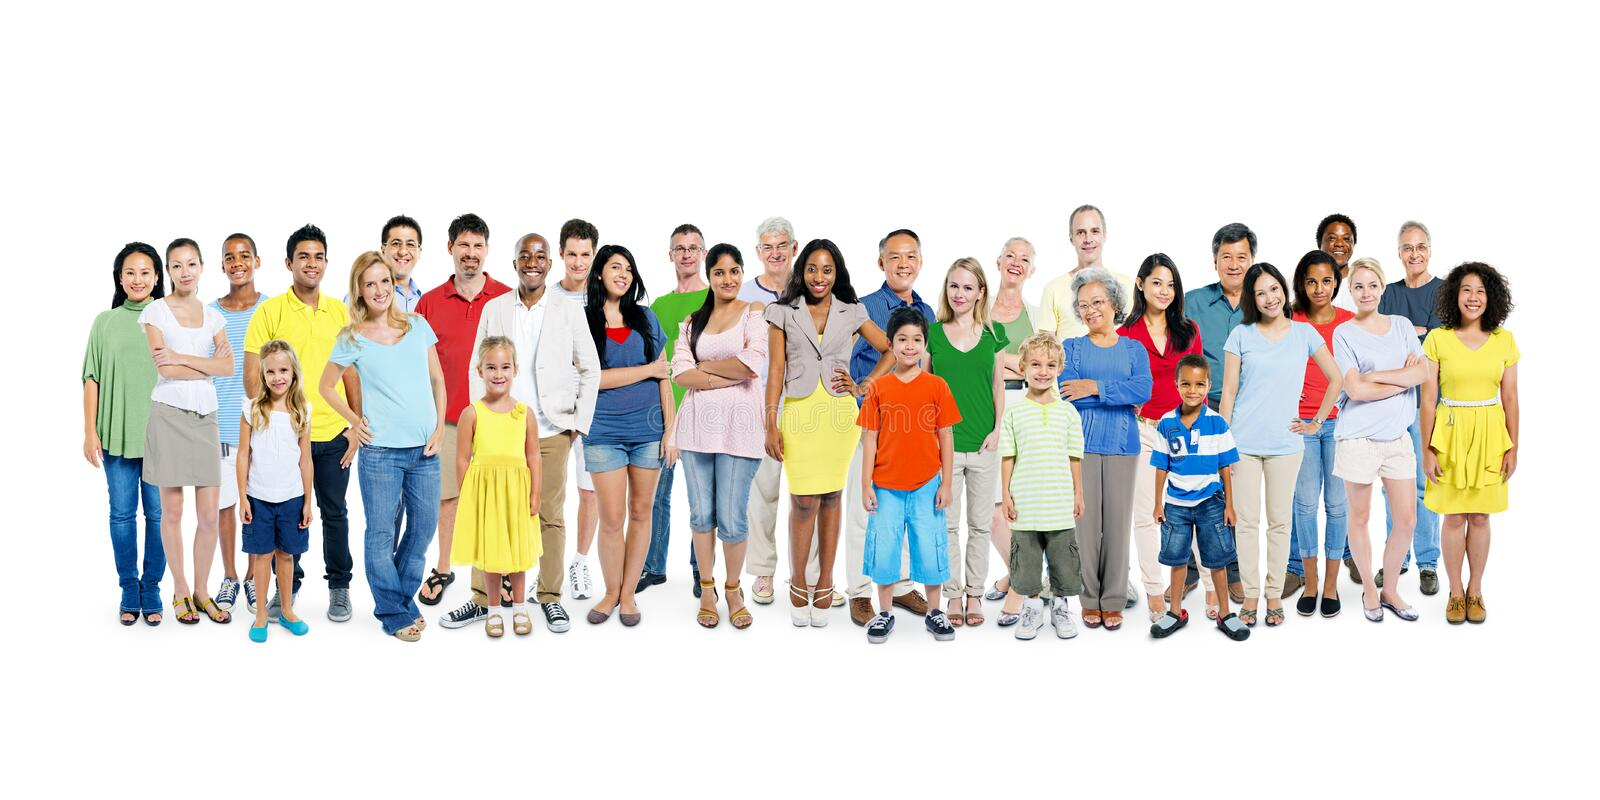 A Large Group of Diverse Colorful Happy People stock photos